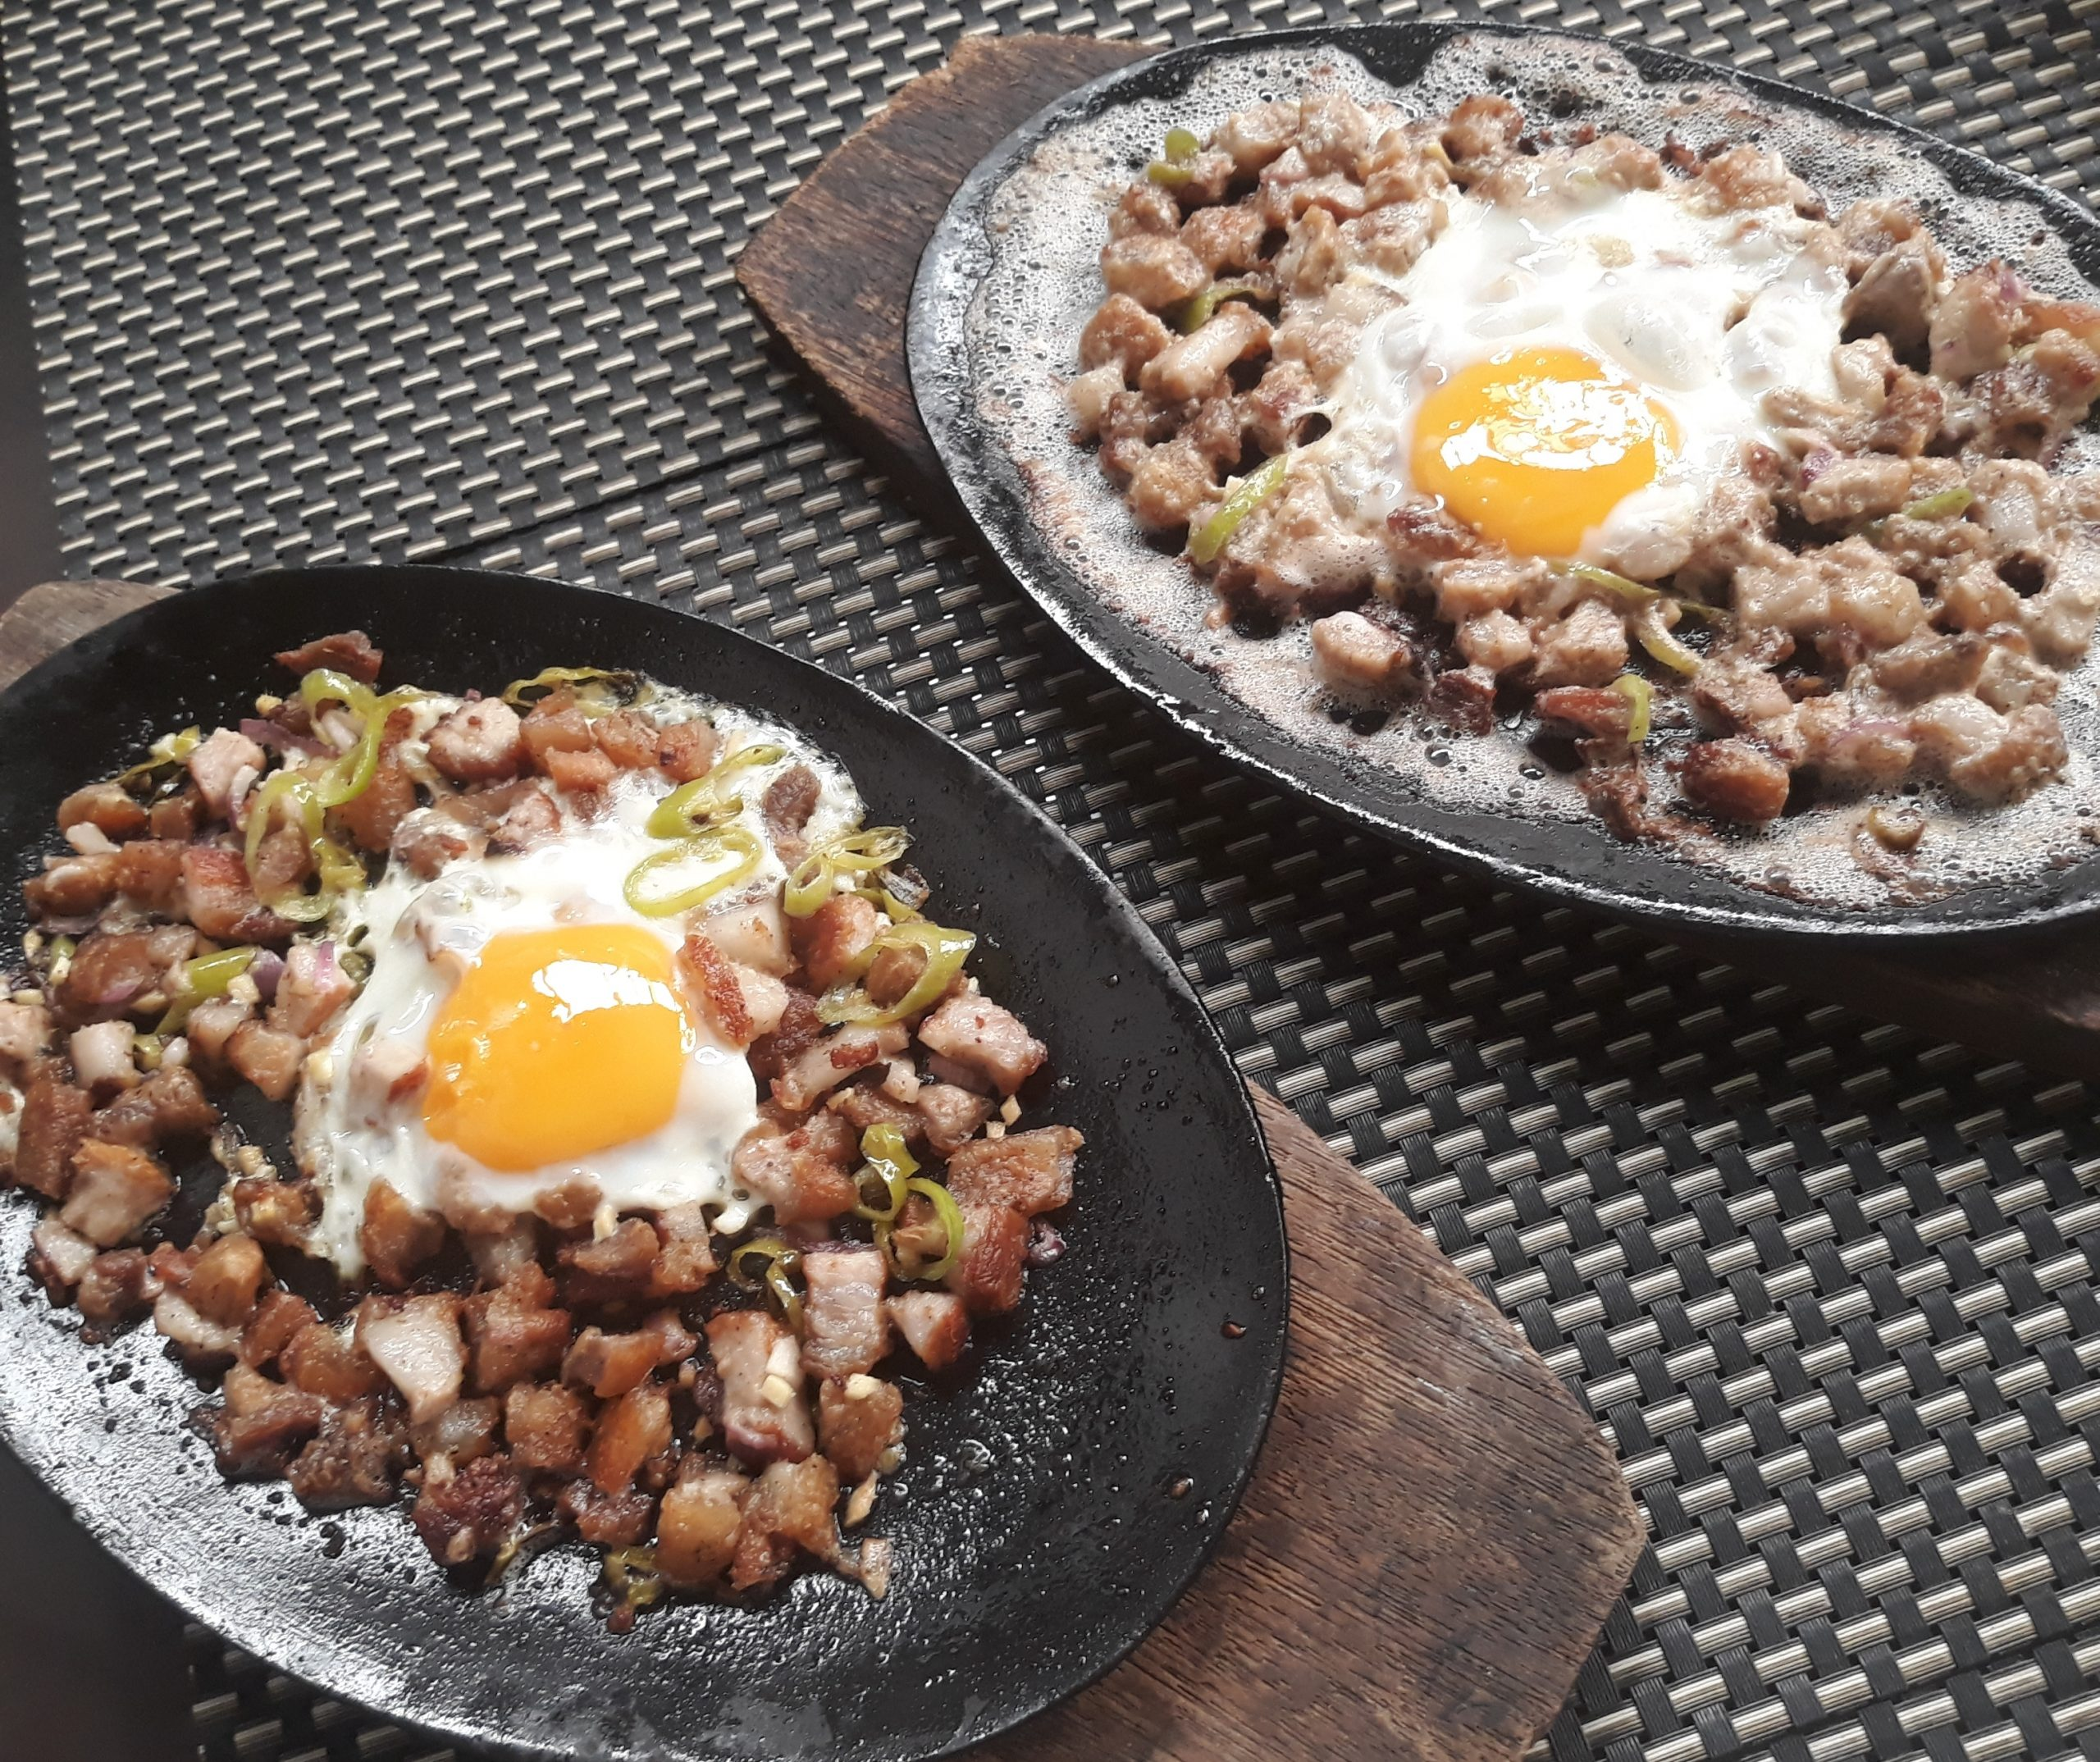 Sisig and dinakdakan dishes side by side.